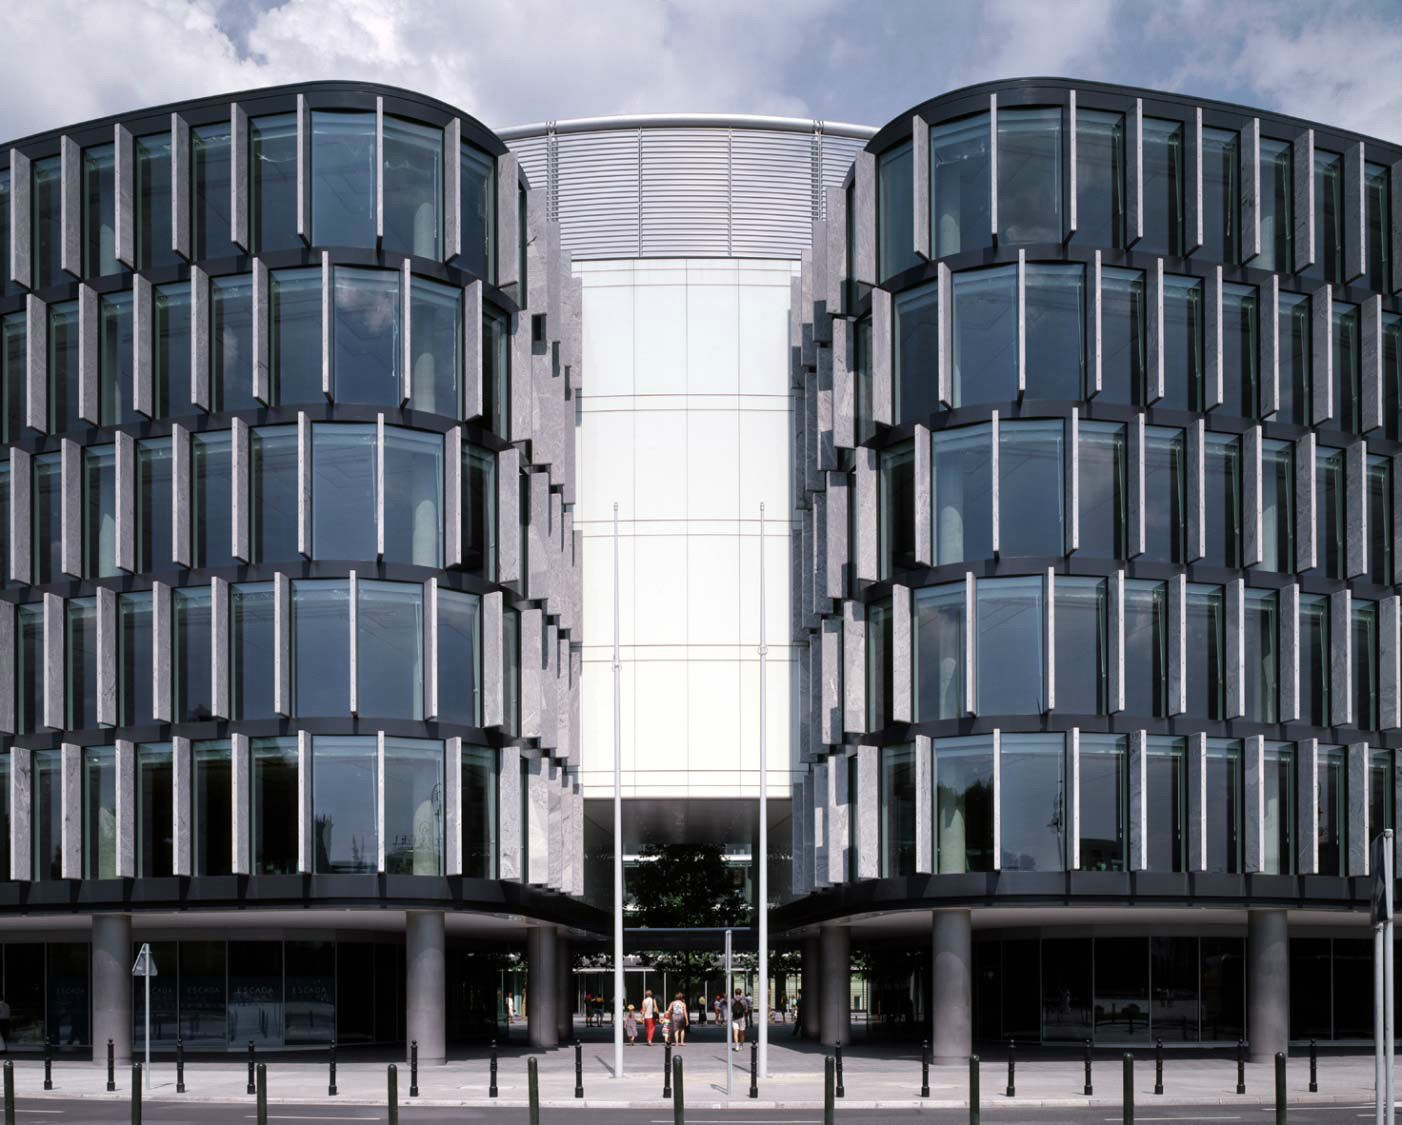 Metropolitan, Pilsudski Square | Foster and Partners   #Foster+Partners #NormanFoster #officebuilding #Poland #Retail #Warsaw